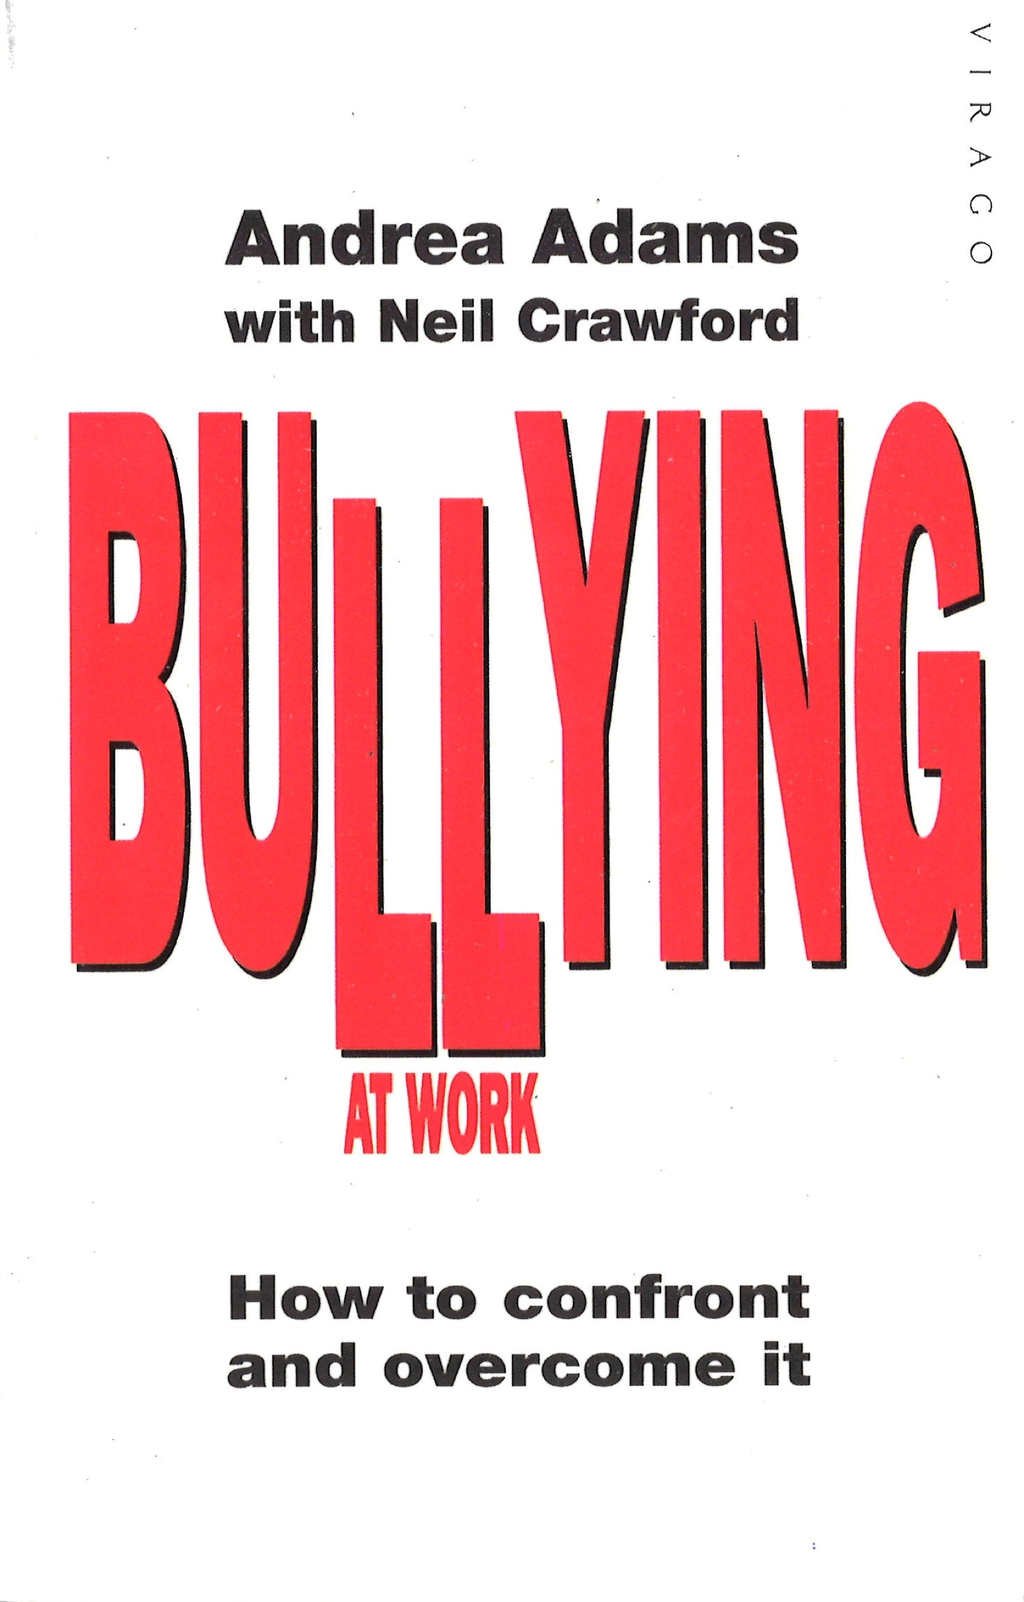 Bullying At Work How to Confront and Overcome It